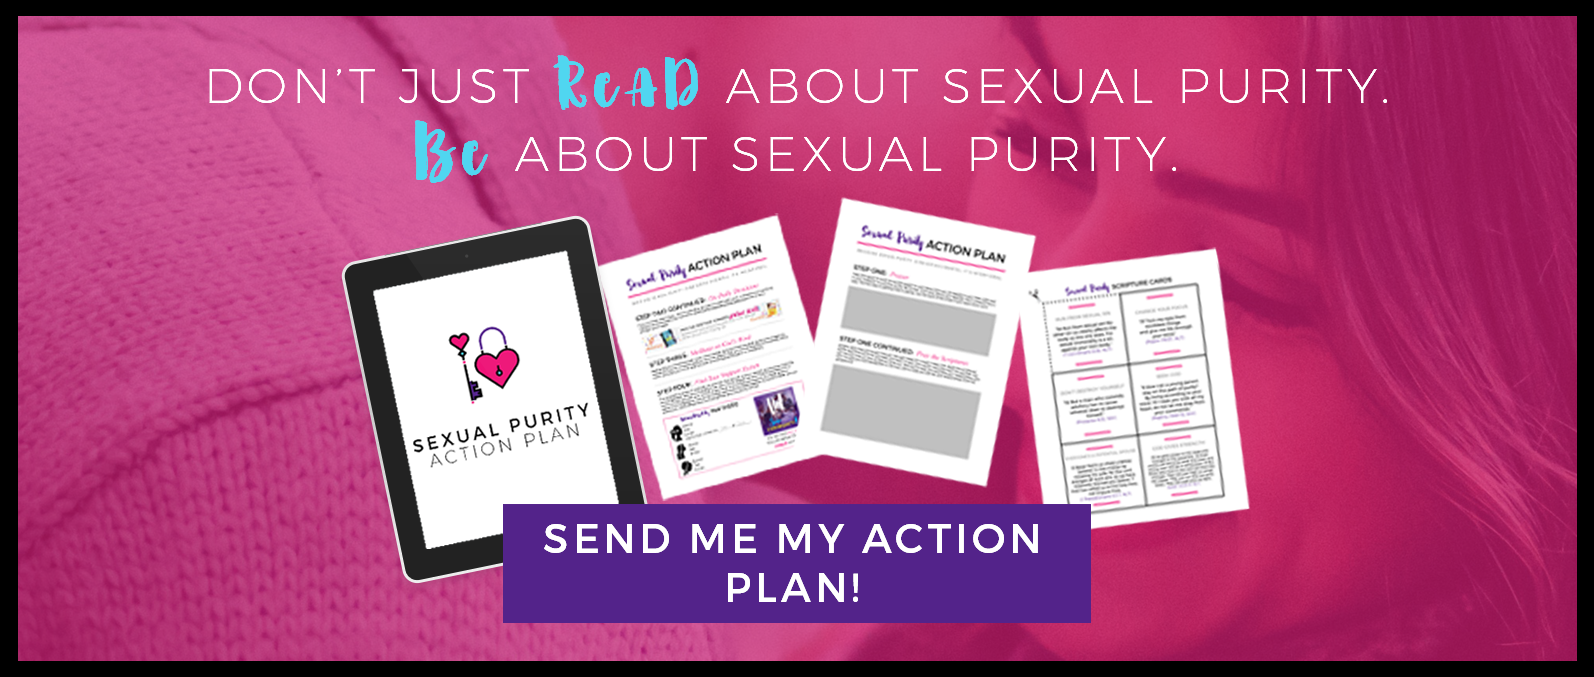 Send me my Sexual Purity Action Plan